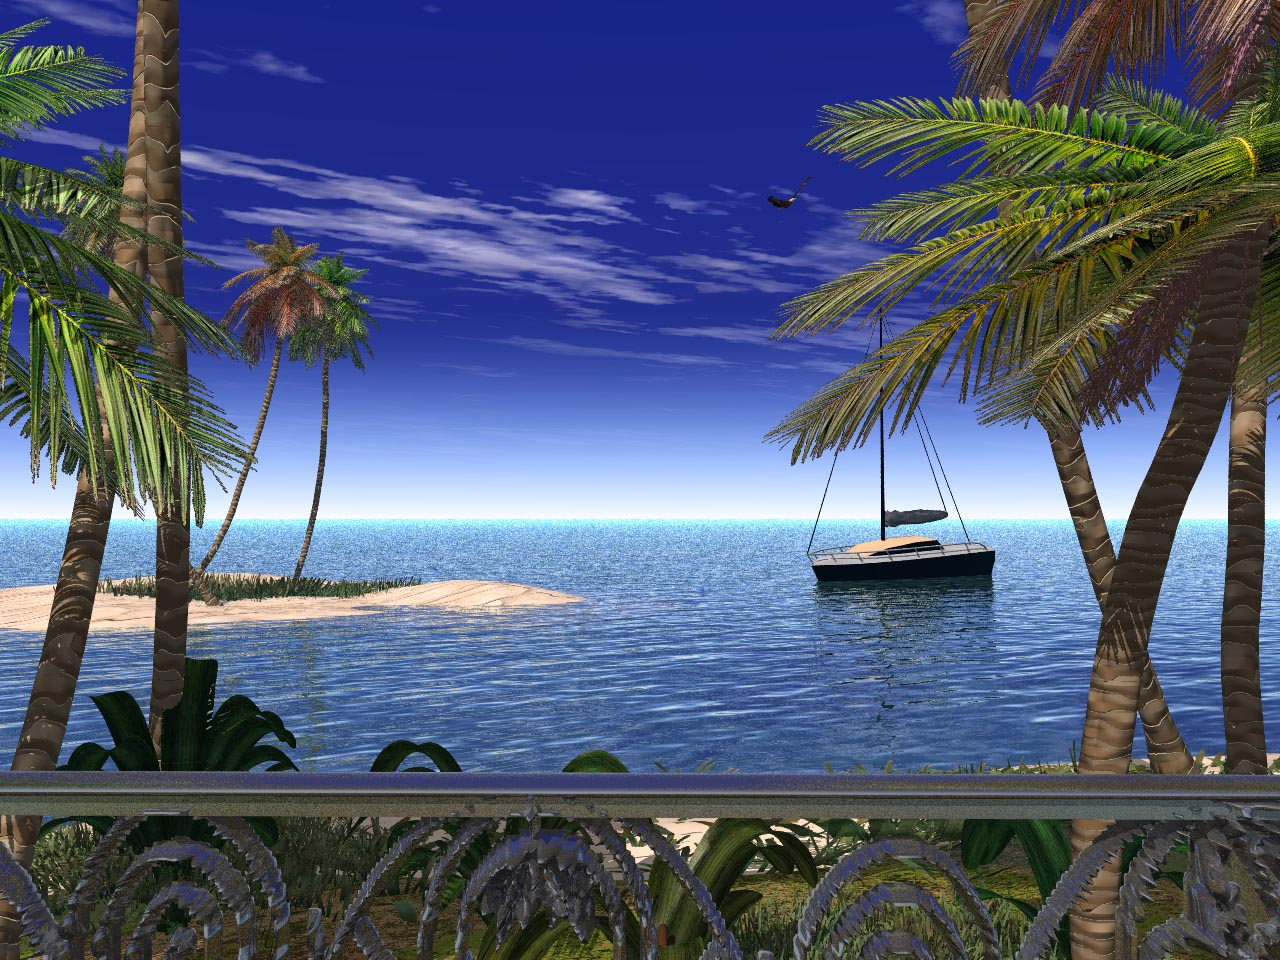 Balcony view by zedkhov on deviantart for Balcony view wallpaper